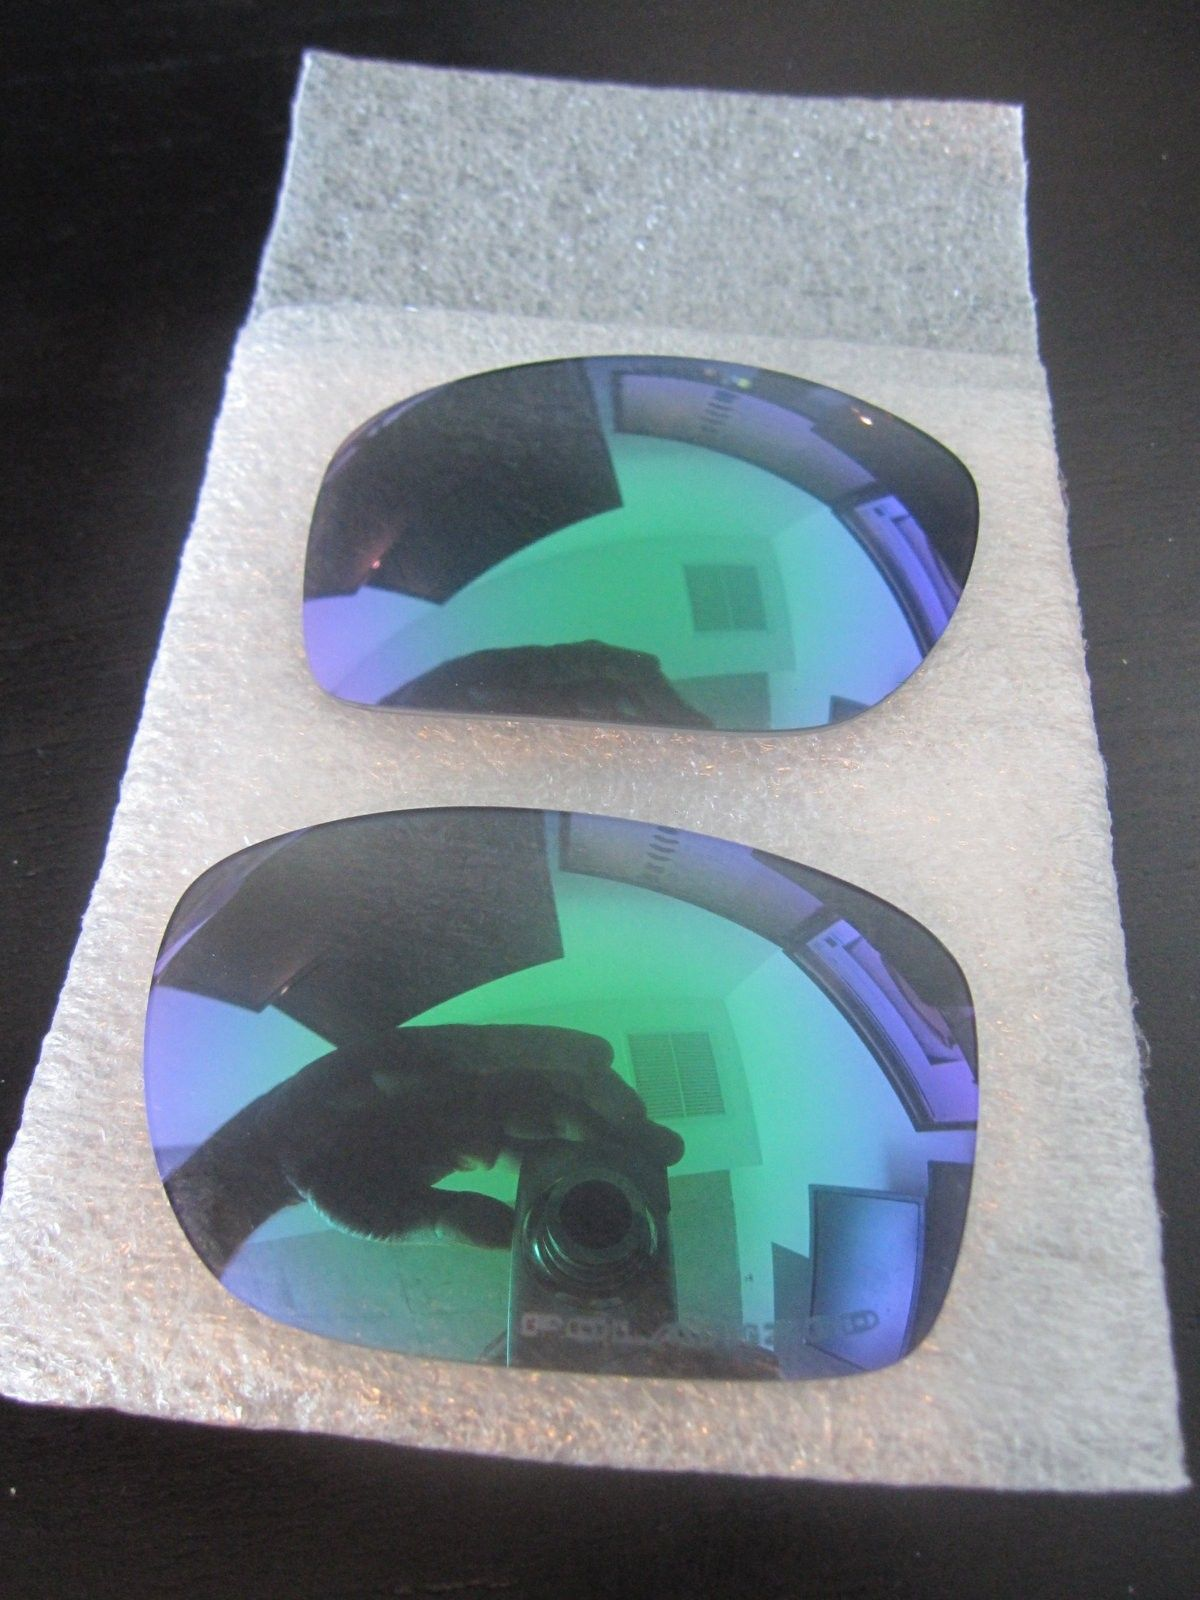 New with defects OEM Canteen lenses - Jade polarized - IMG_5049.JPG